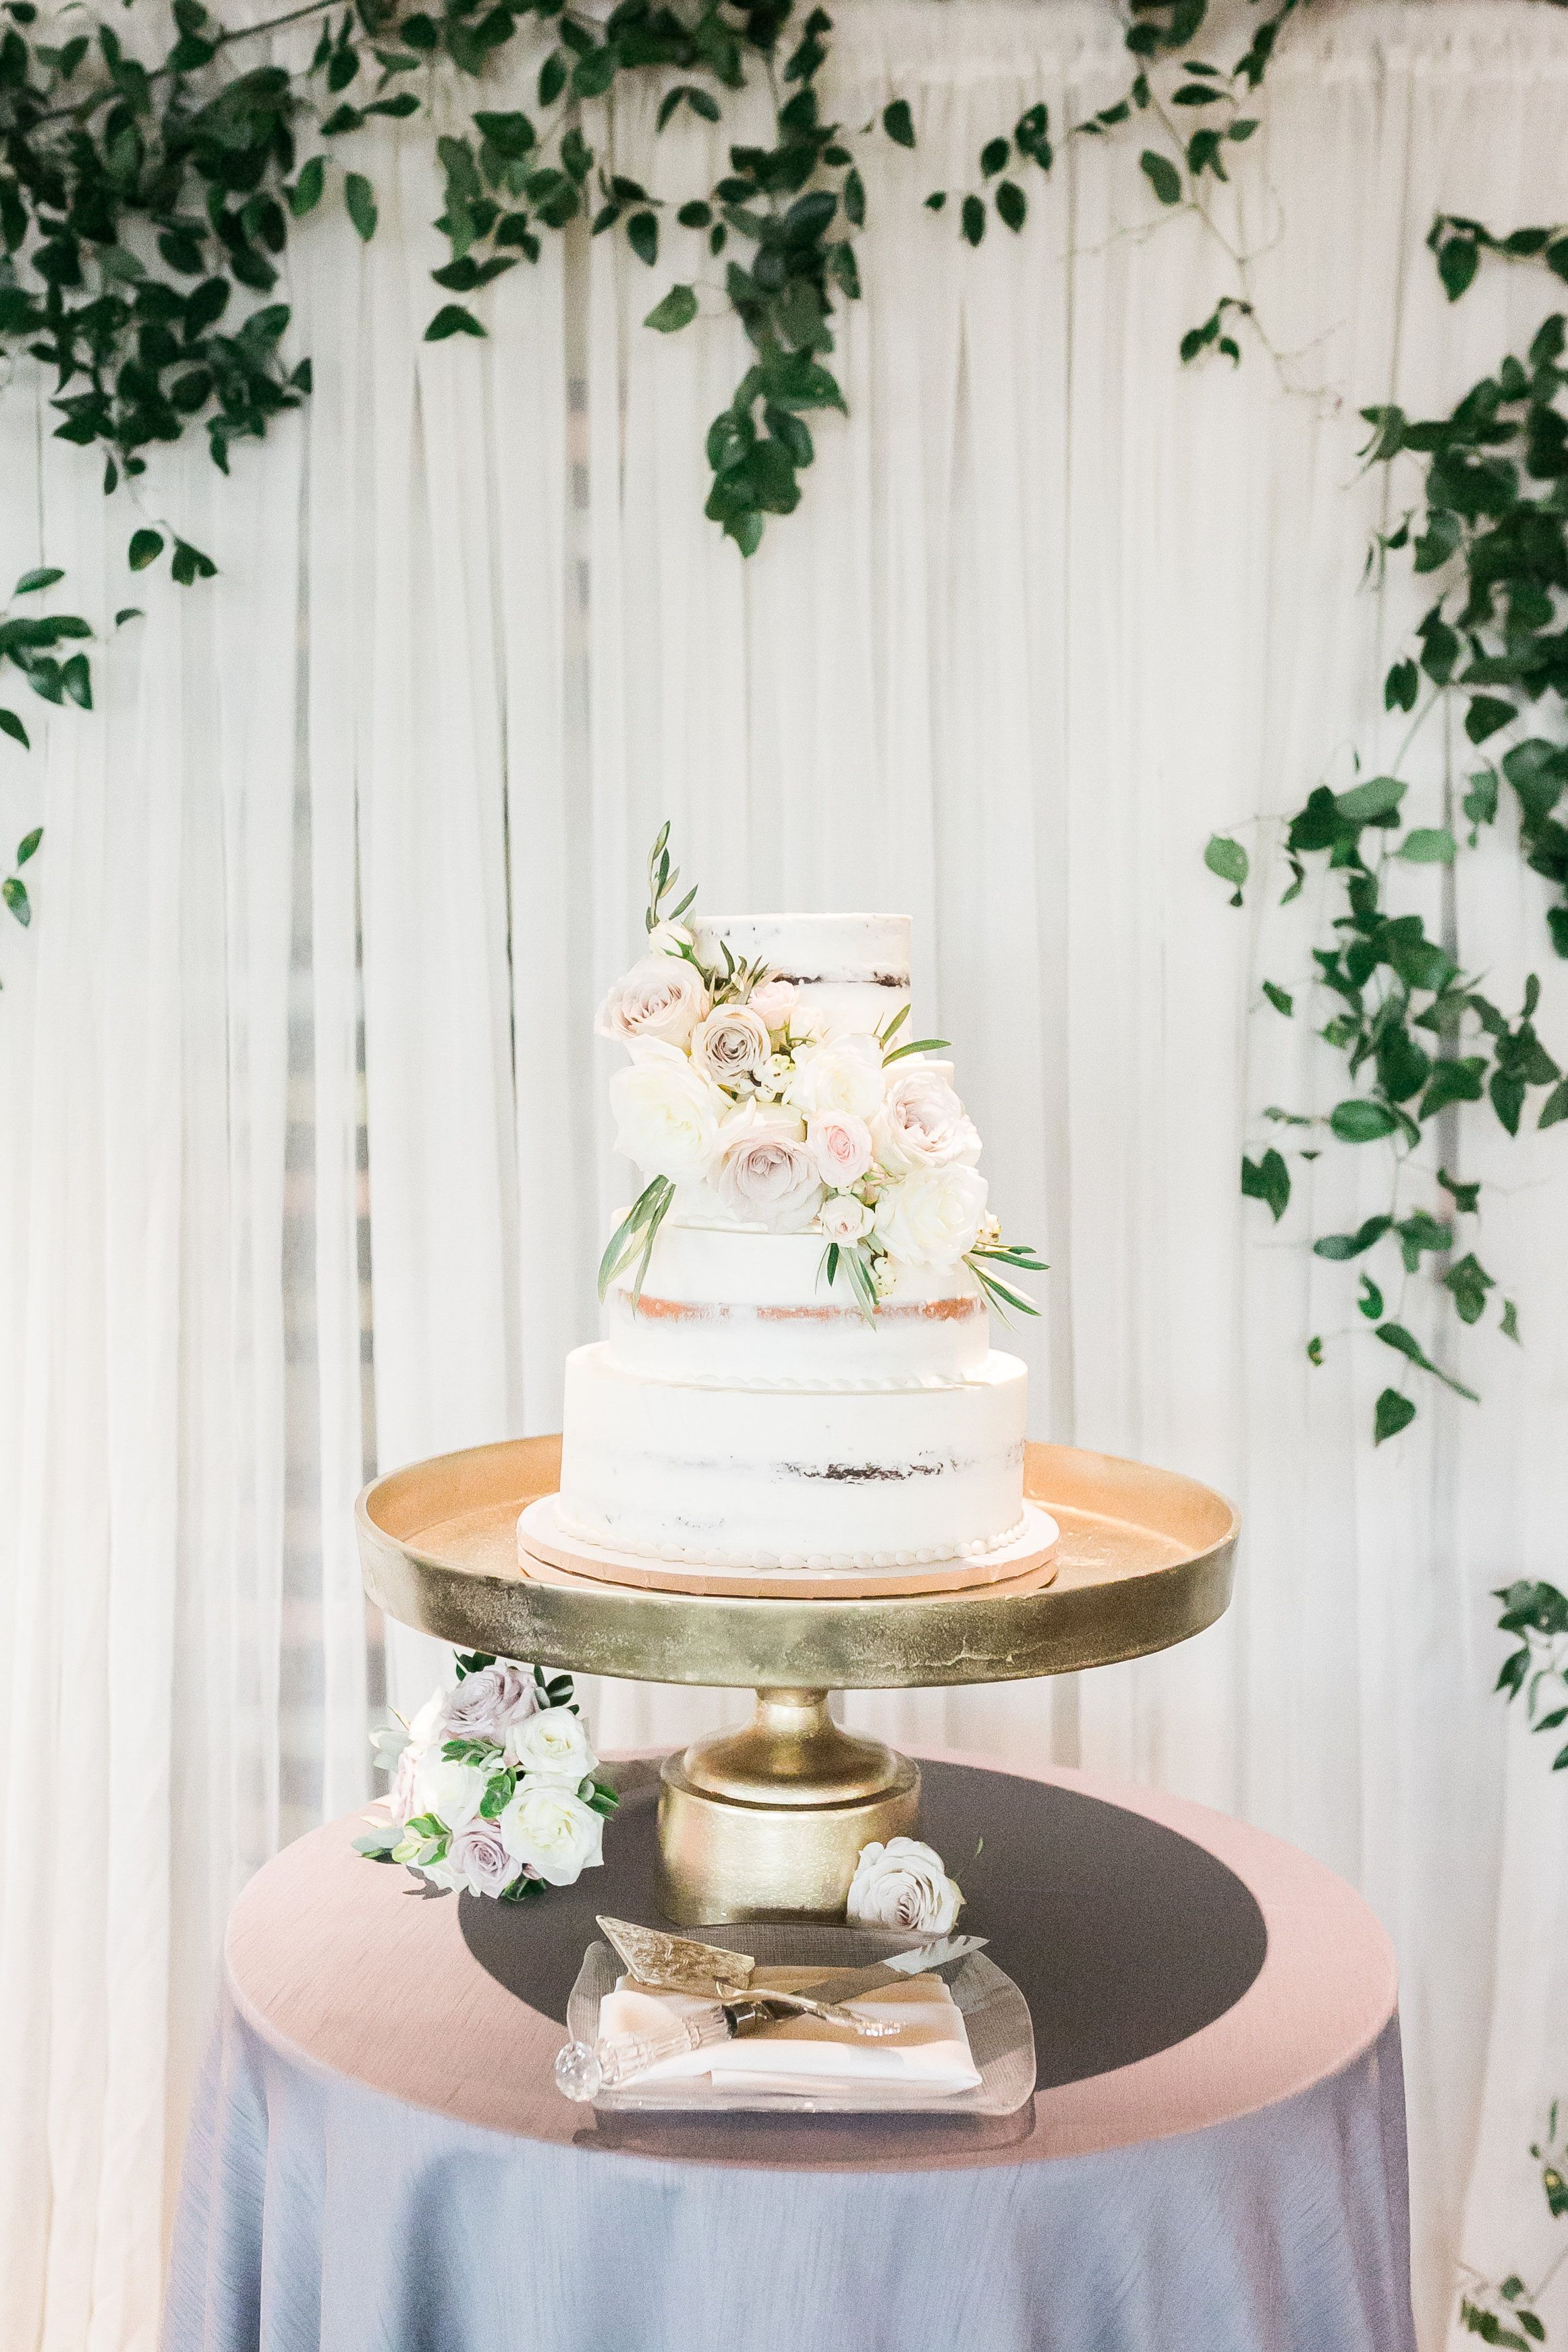 Cake with fresh flowers displayed in front of draping and greenery